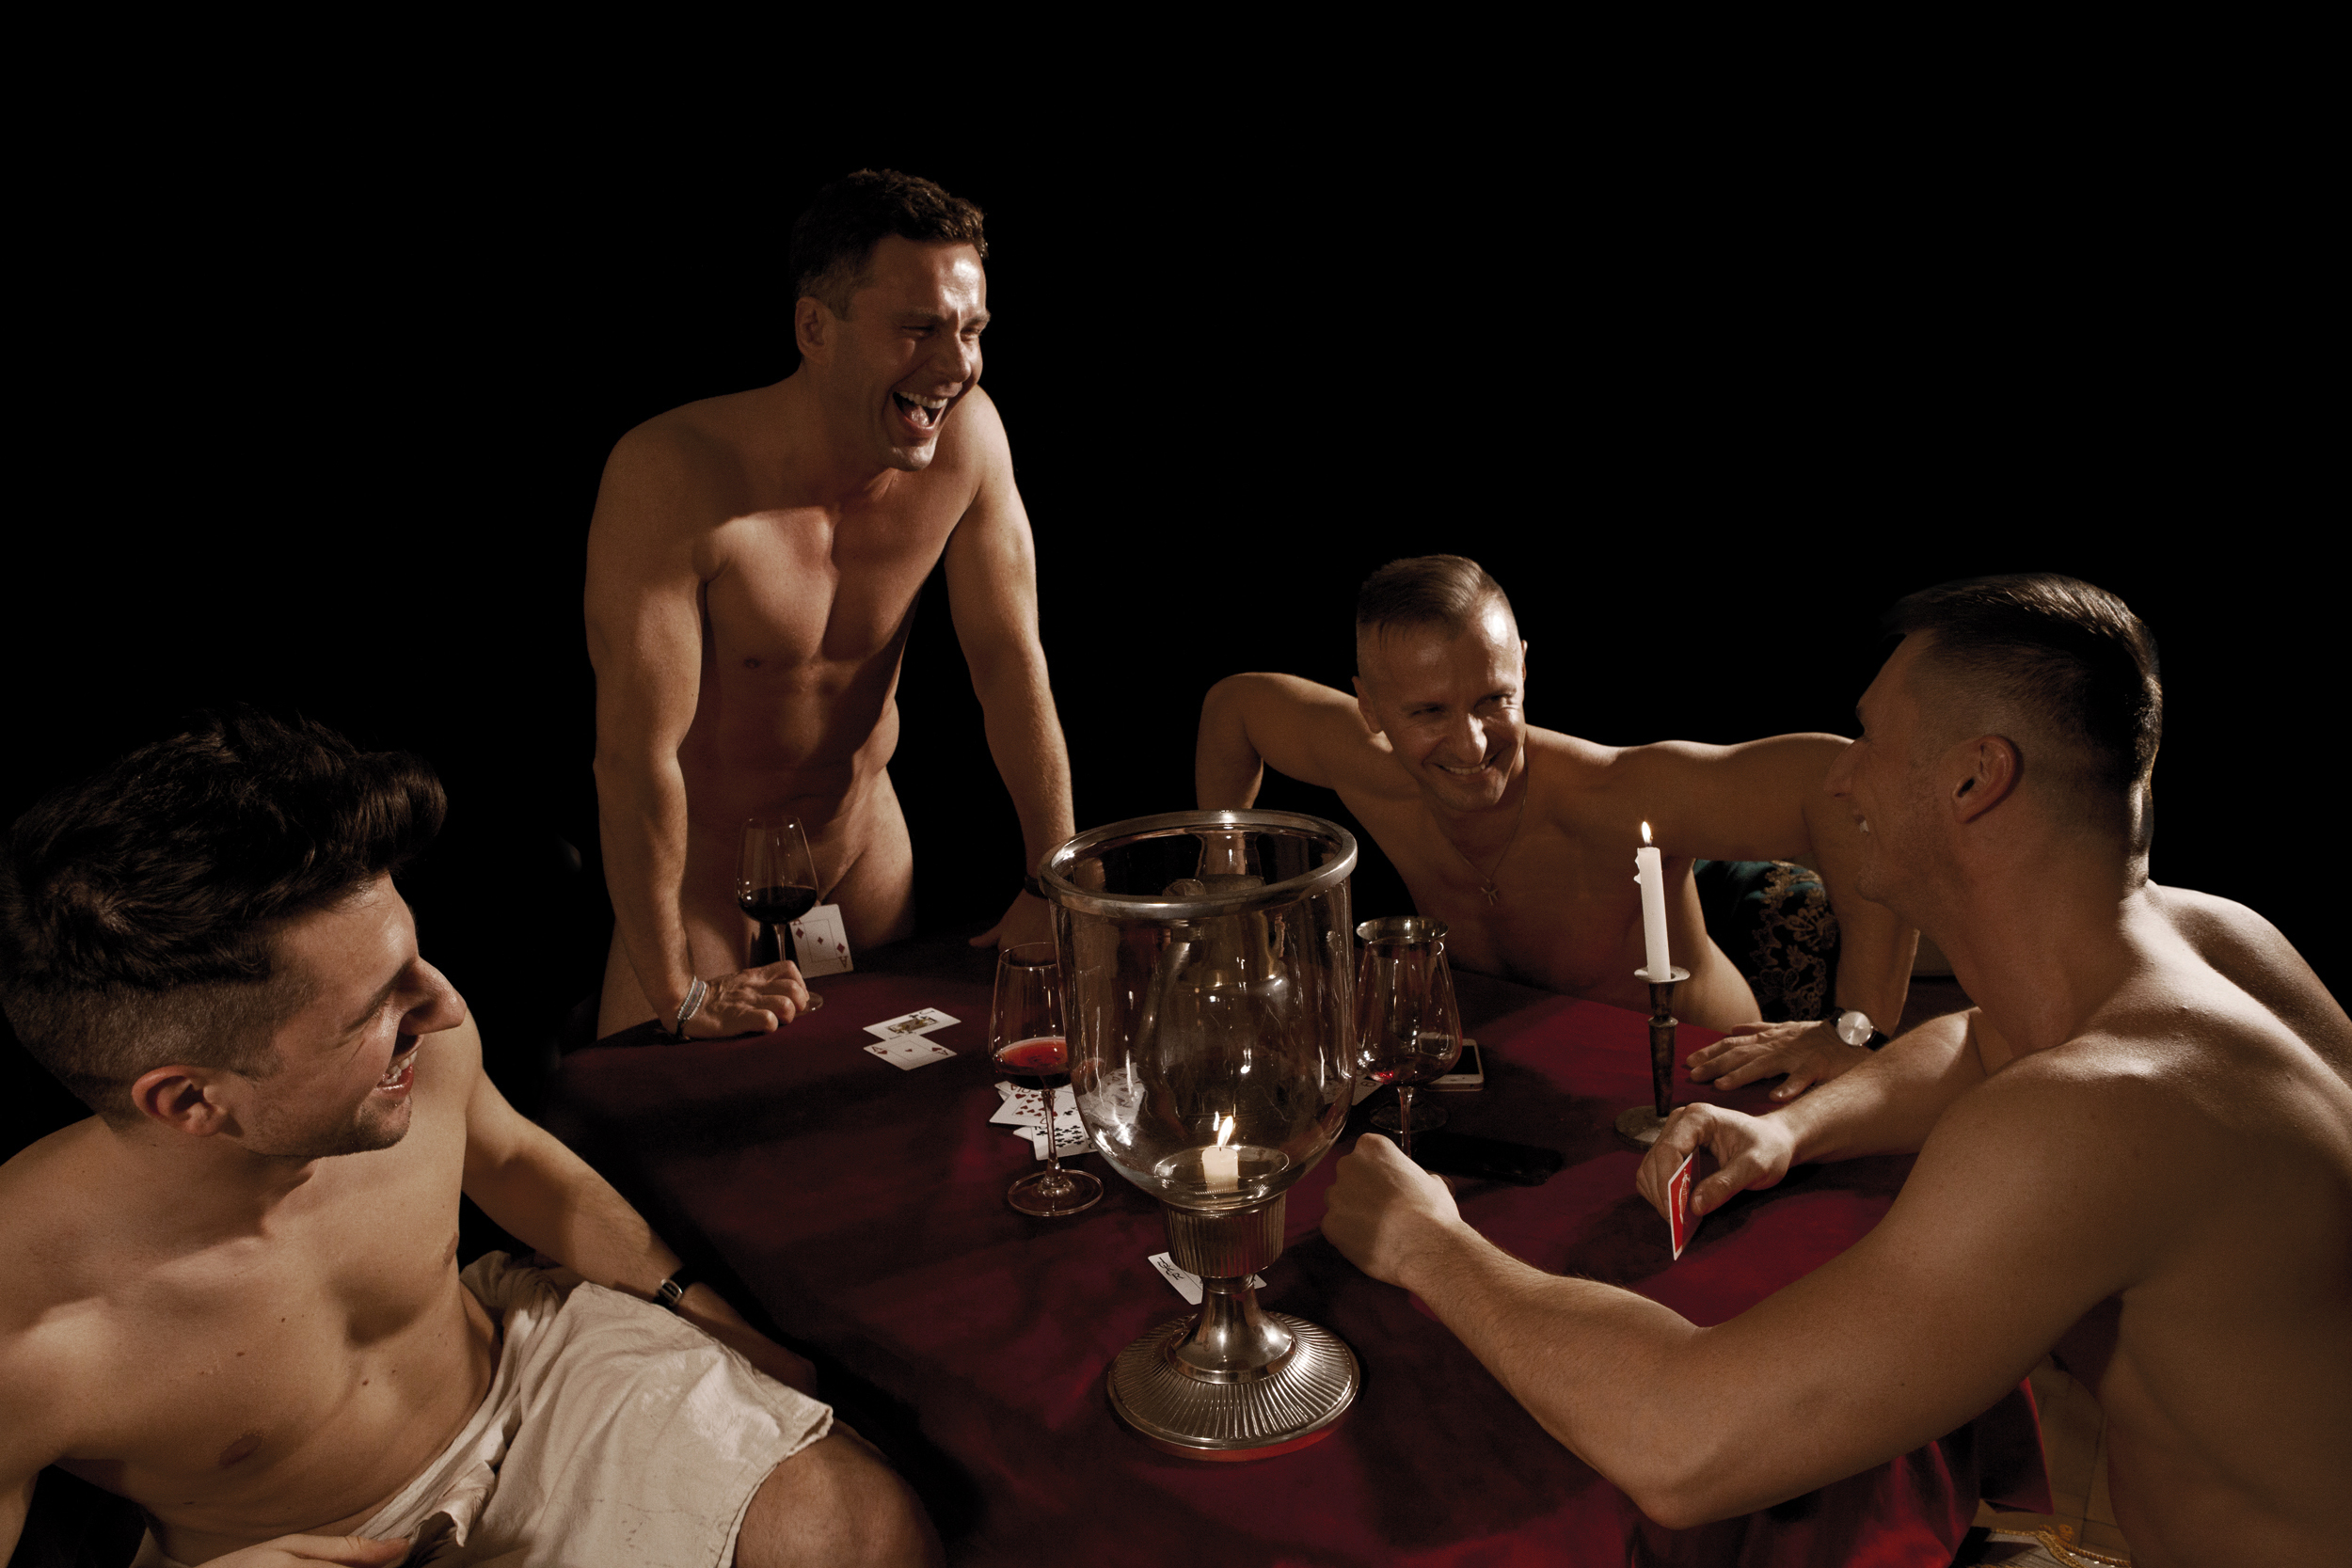 - Players - Strip poker IIIPhotography on paper45x30cmEdition 72015